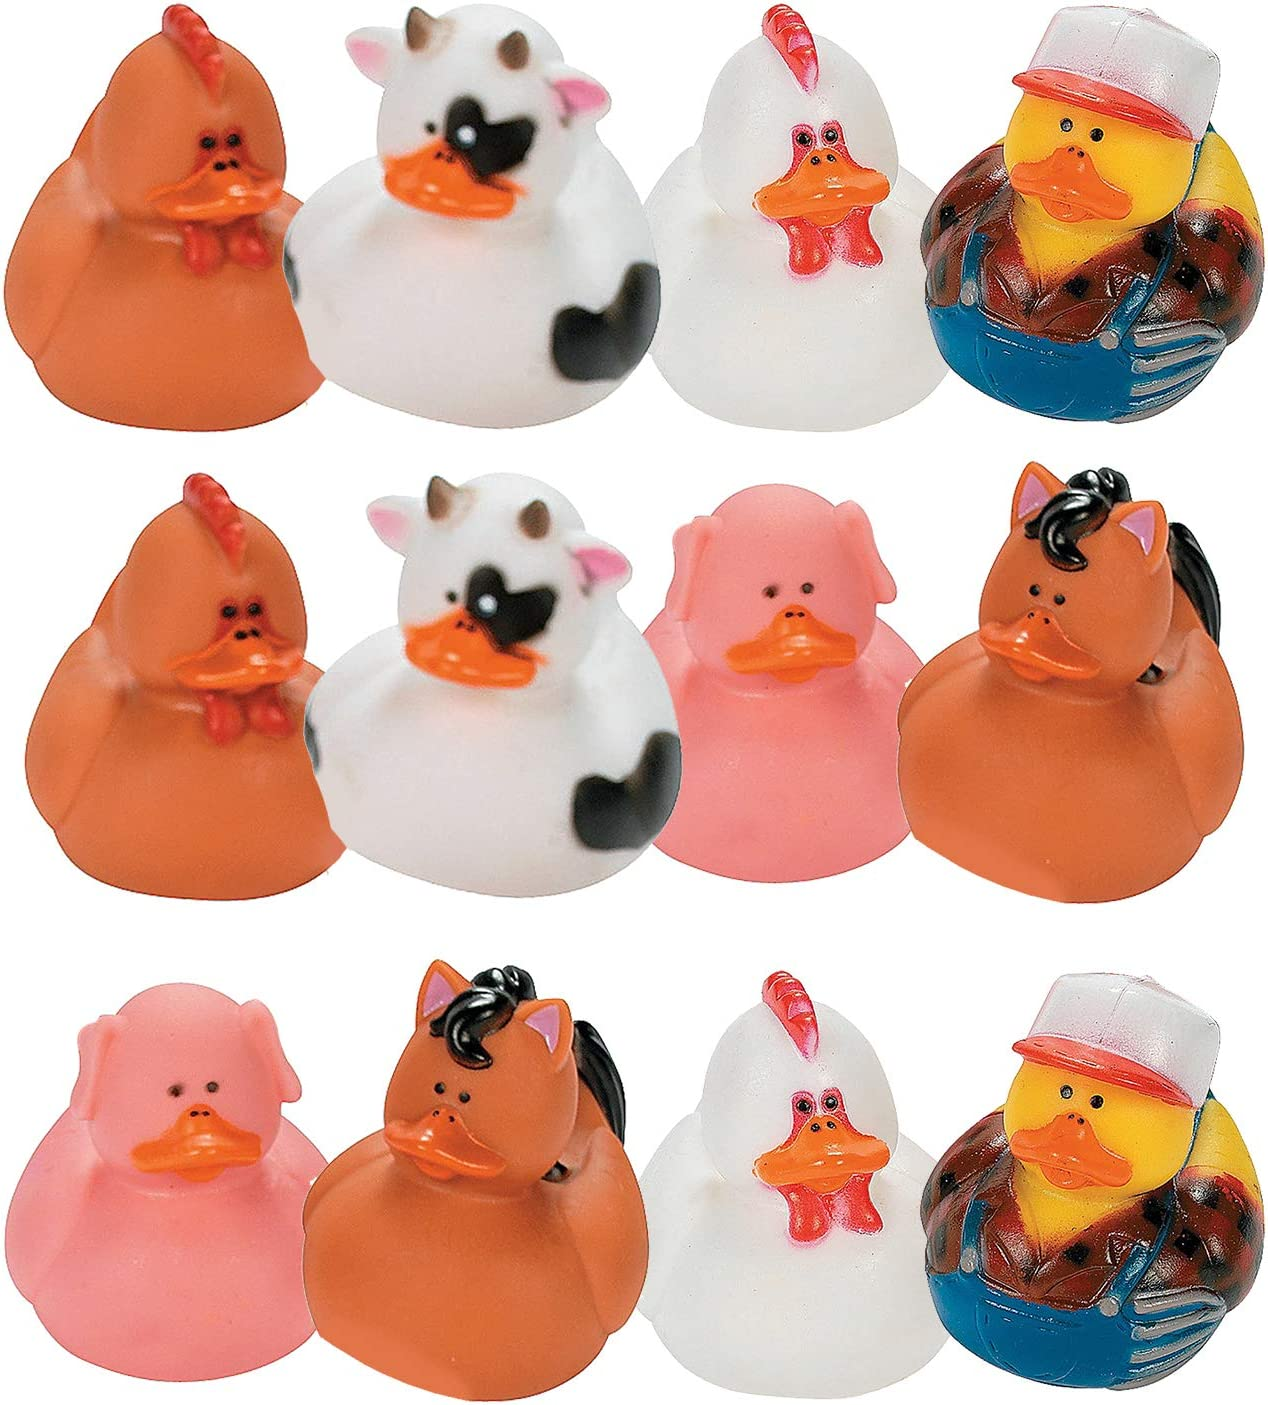 Fun Express Farm Animal Rubber Duckies   12 Count   Great for Party Favors, Children's Birthday Bash, Animal-Themed Parties